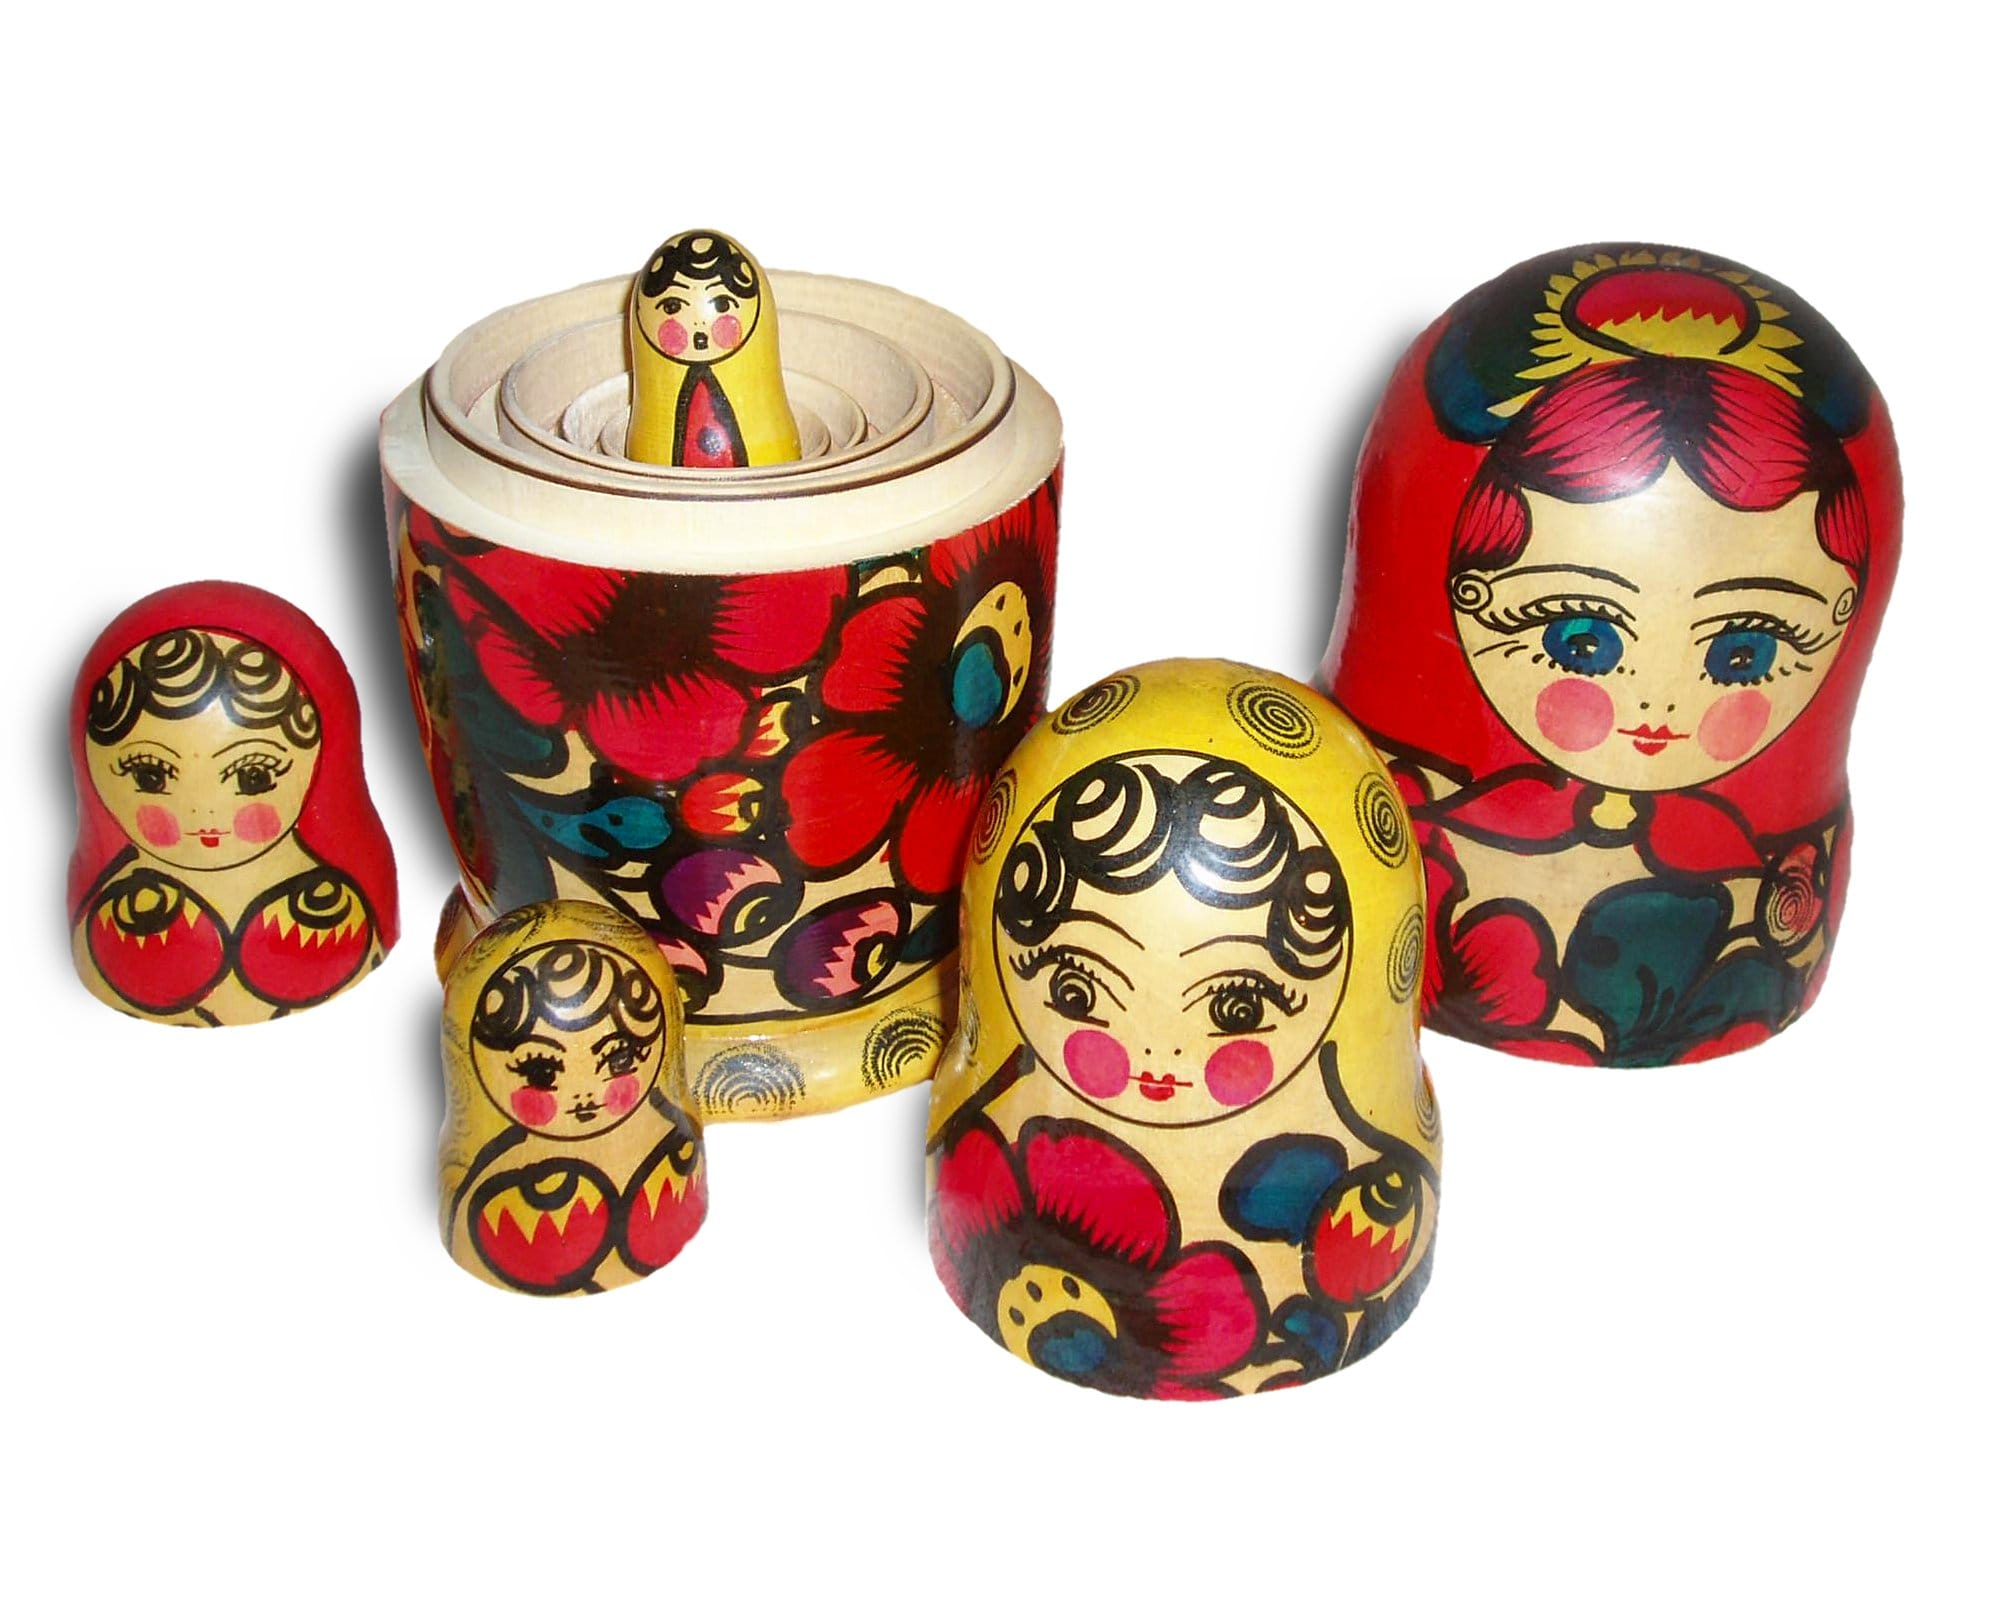 Matryoshka dolls.